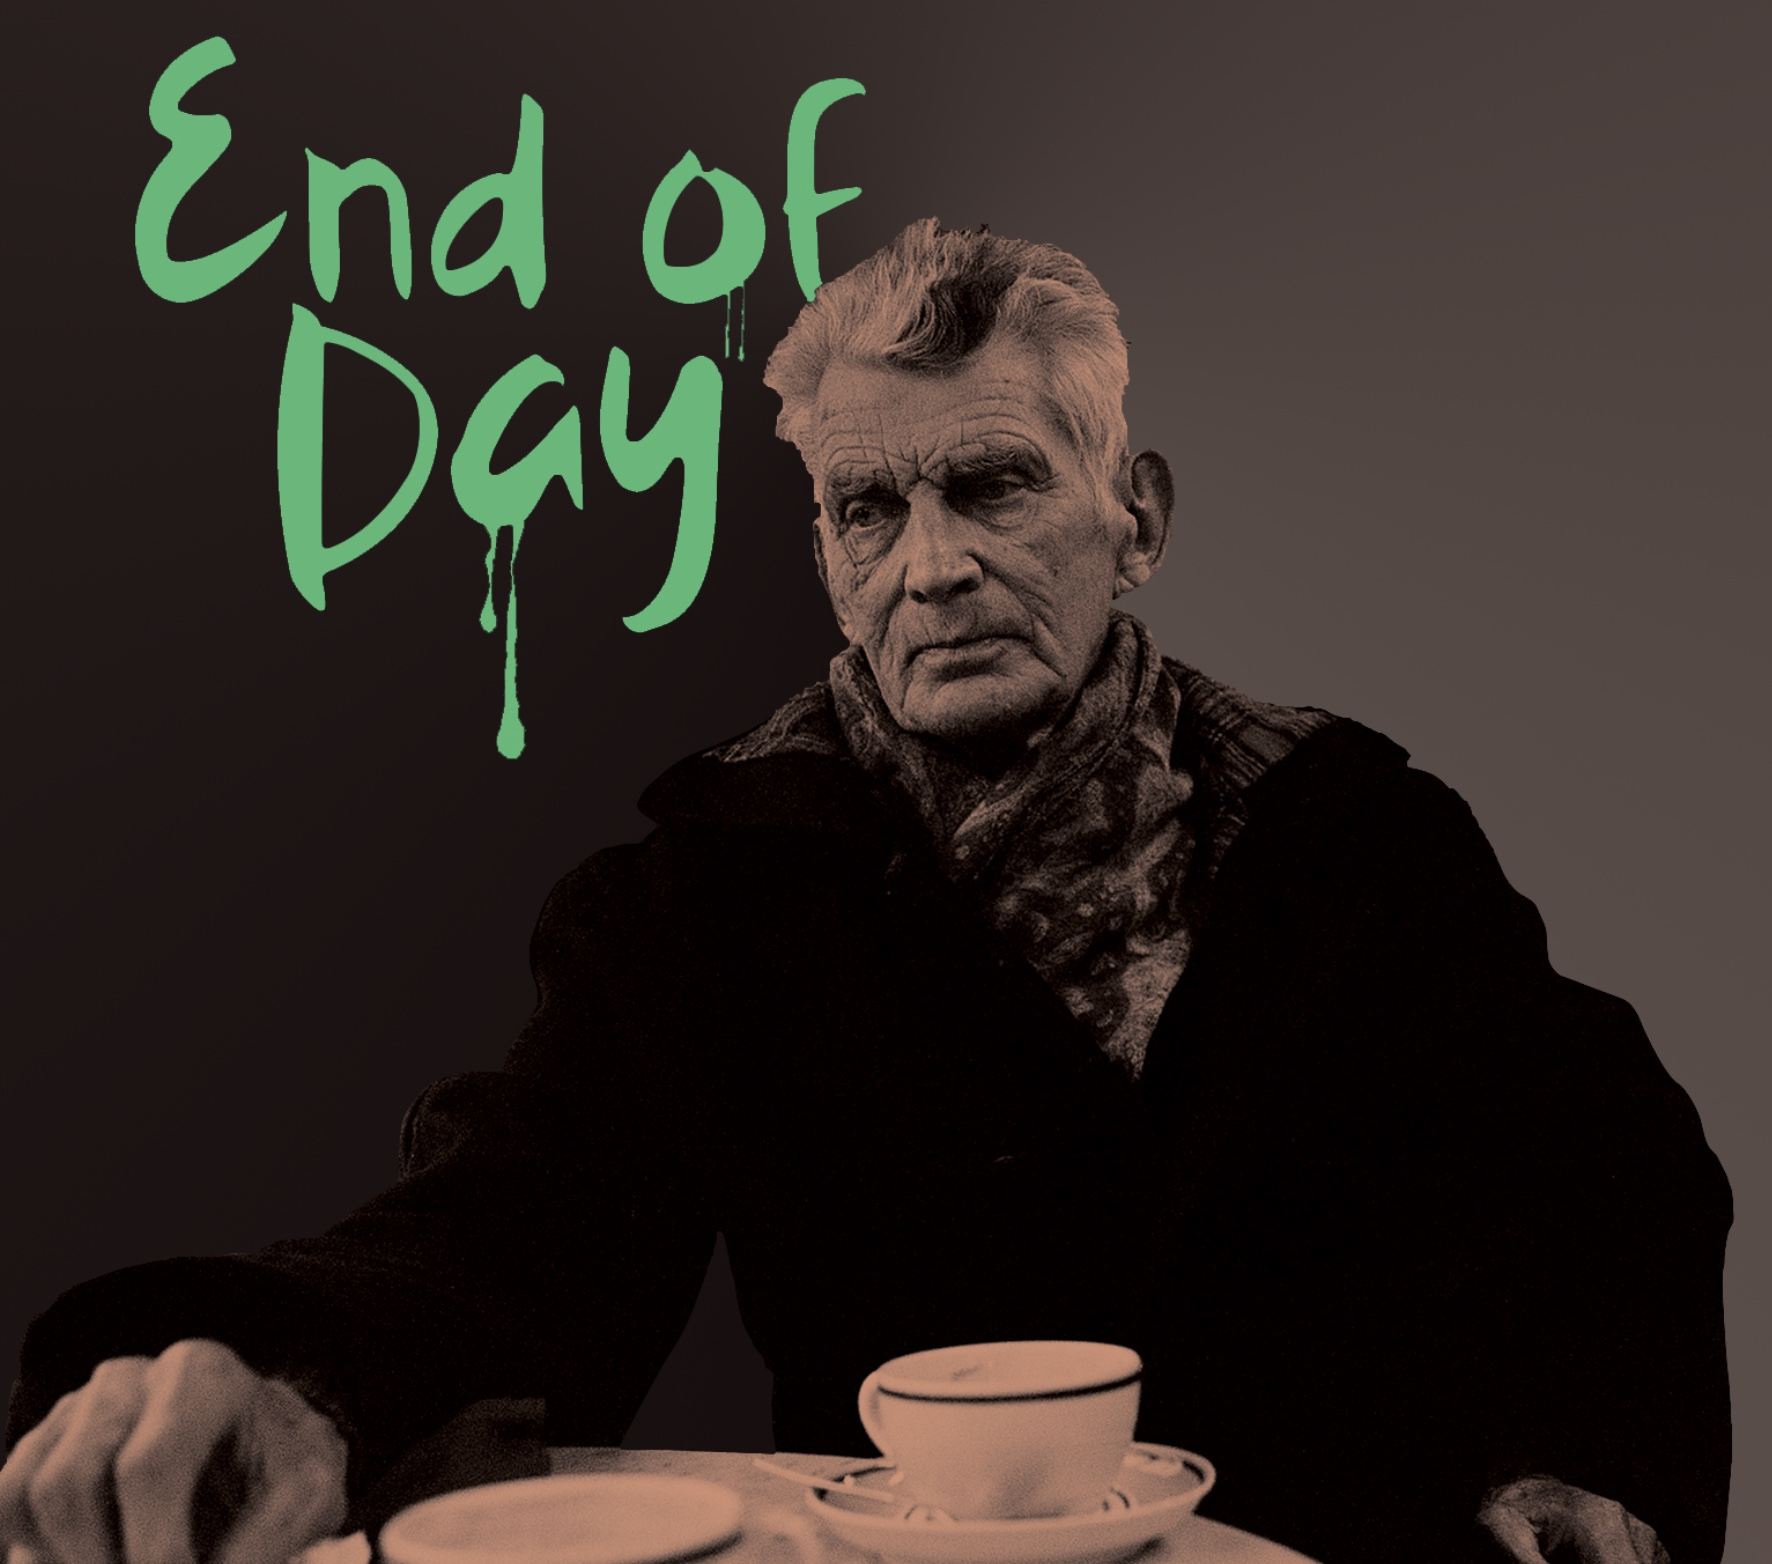 End of Day by Samuel Beckett